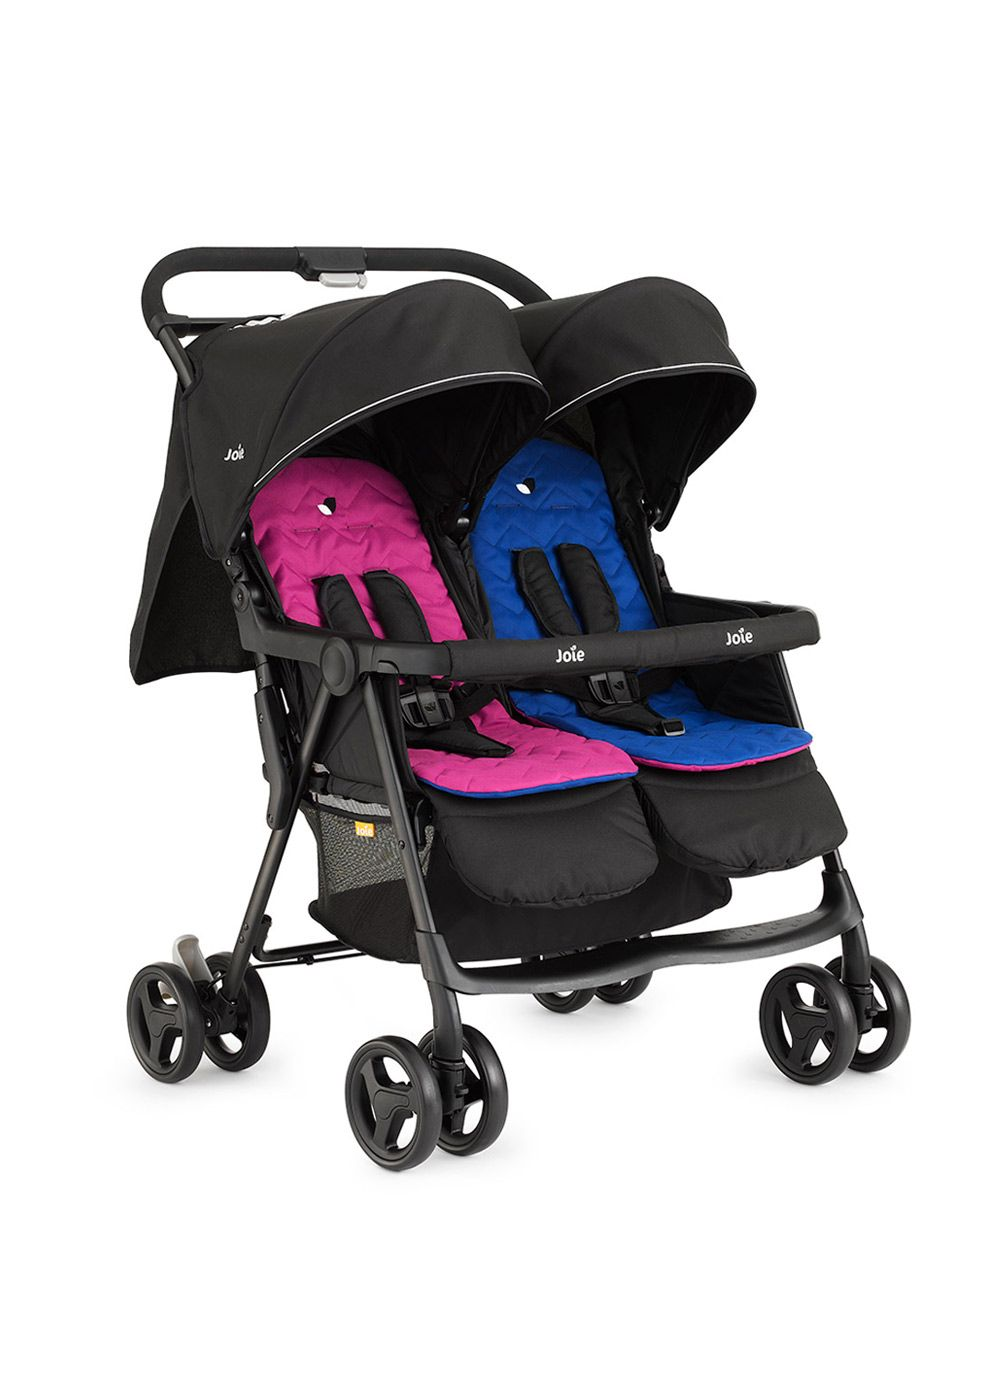 Tweeling Kinderwagen Abc Zoom Joie Aire Twin Double Stroller Pink Blue Twin Strollers